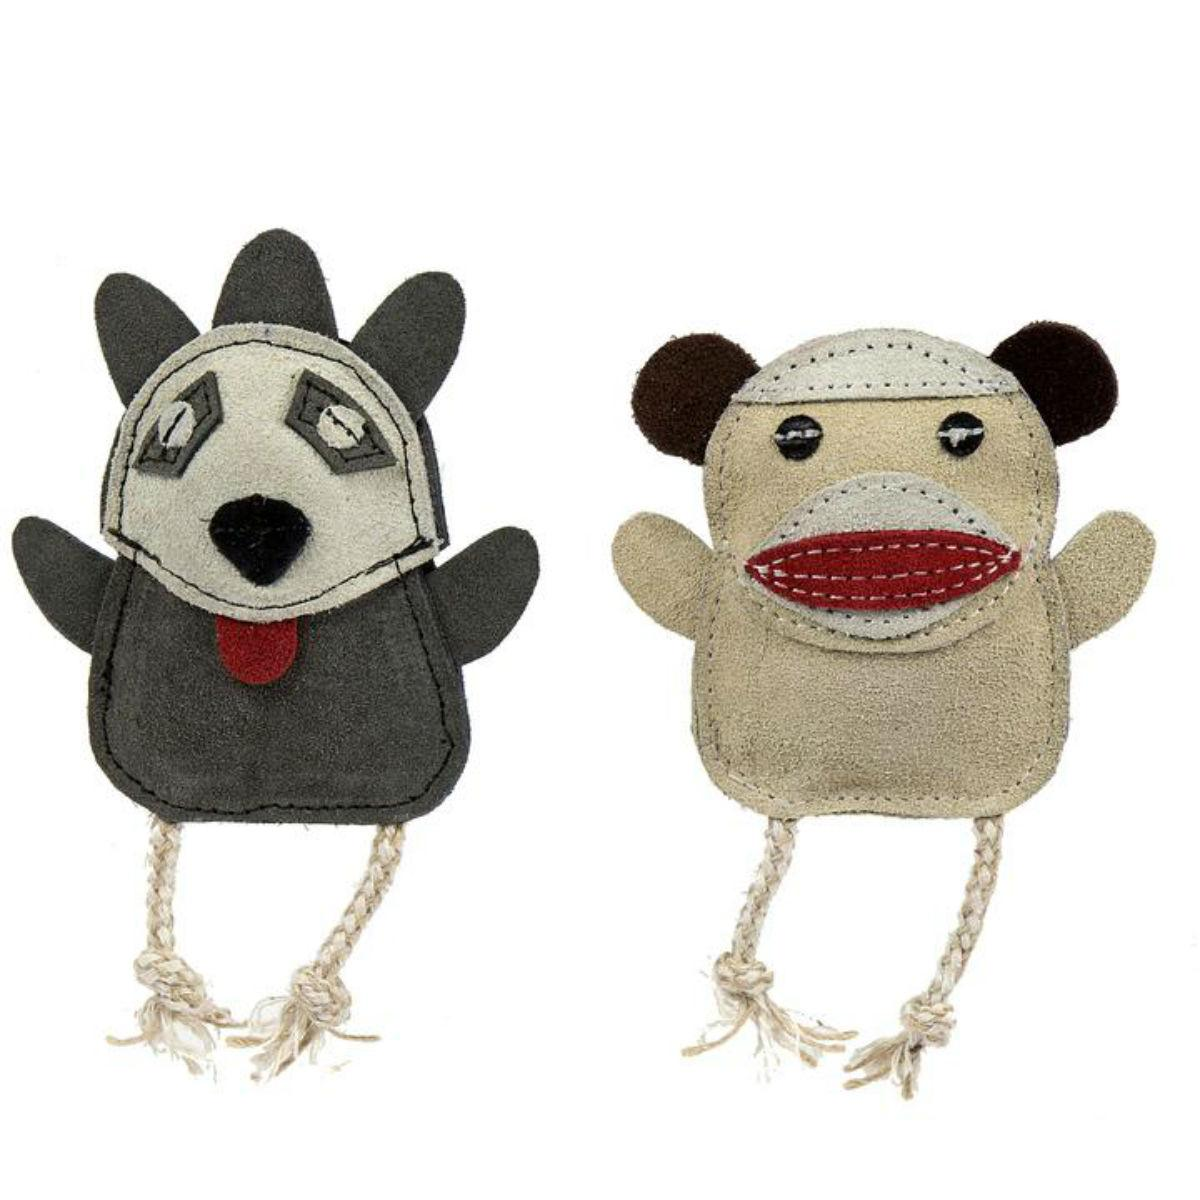 HuggleHounds Naturals Wee Buddie Dog Toy - Monkey and Raccoon